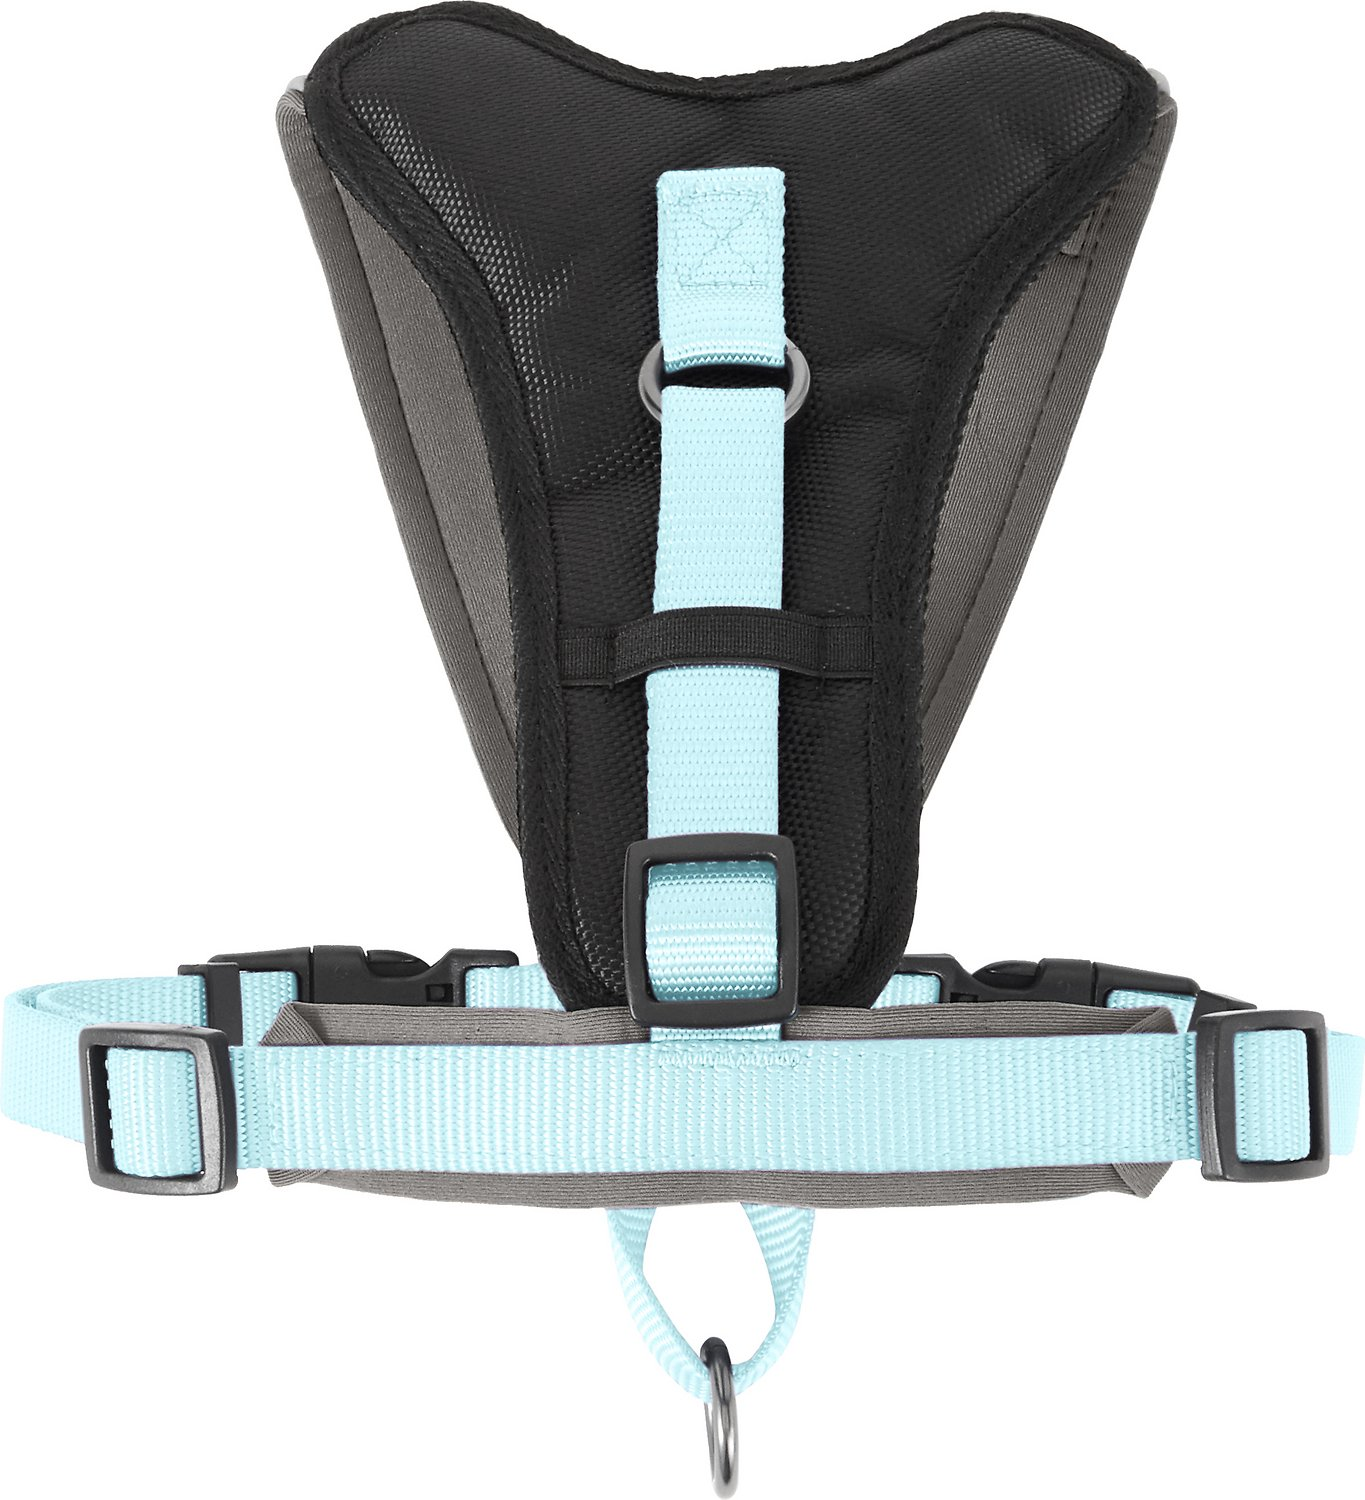 Pawtitas Reflective Padded Dog Harness, Teal, Medium/Large - Chewy.com